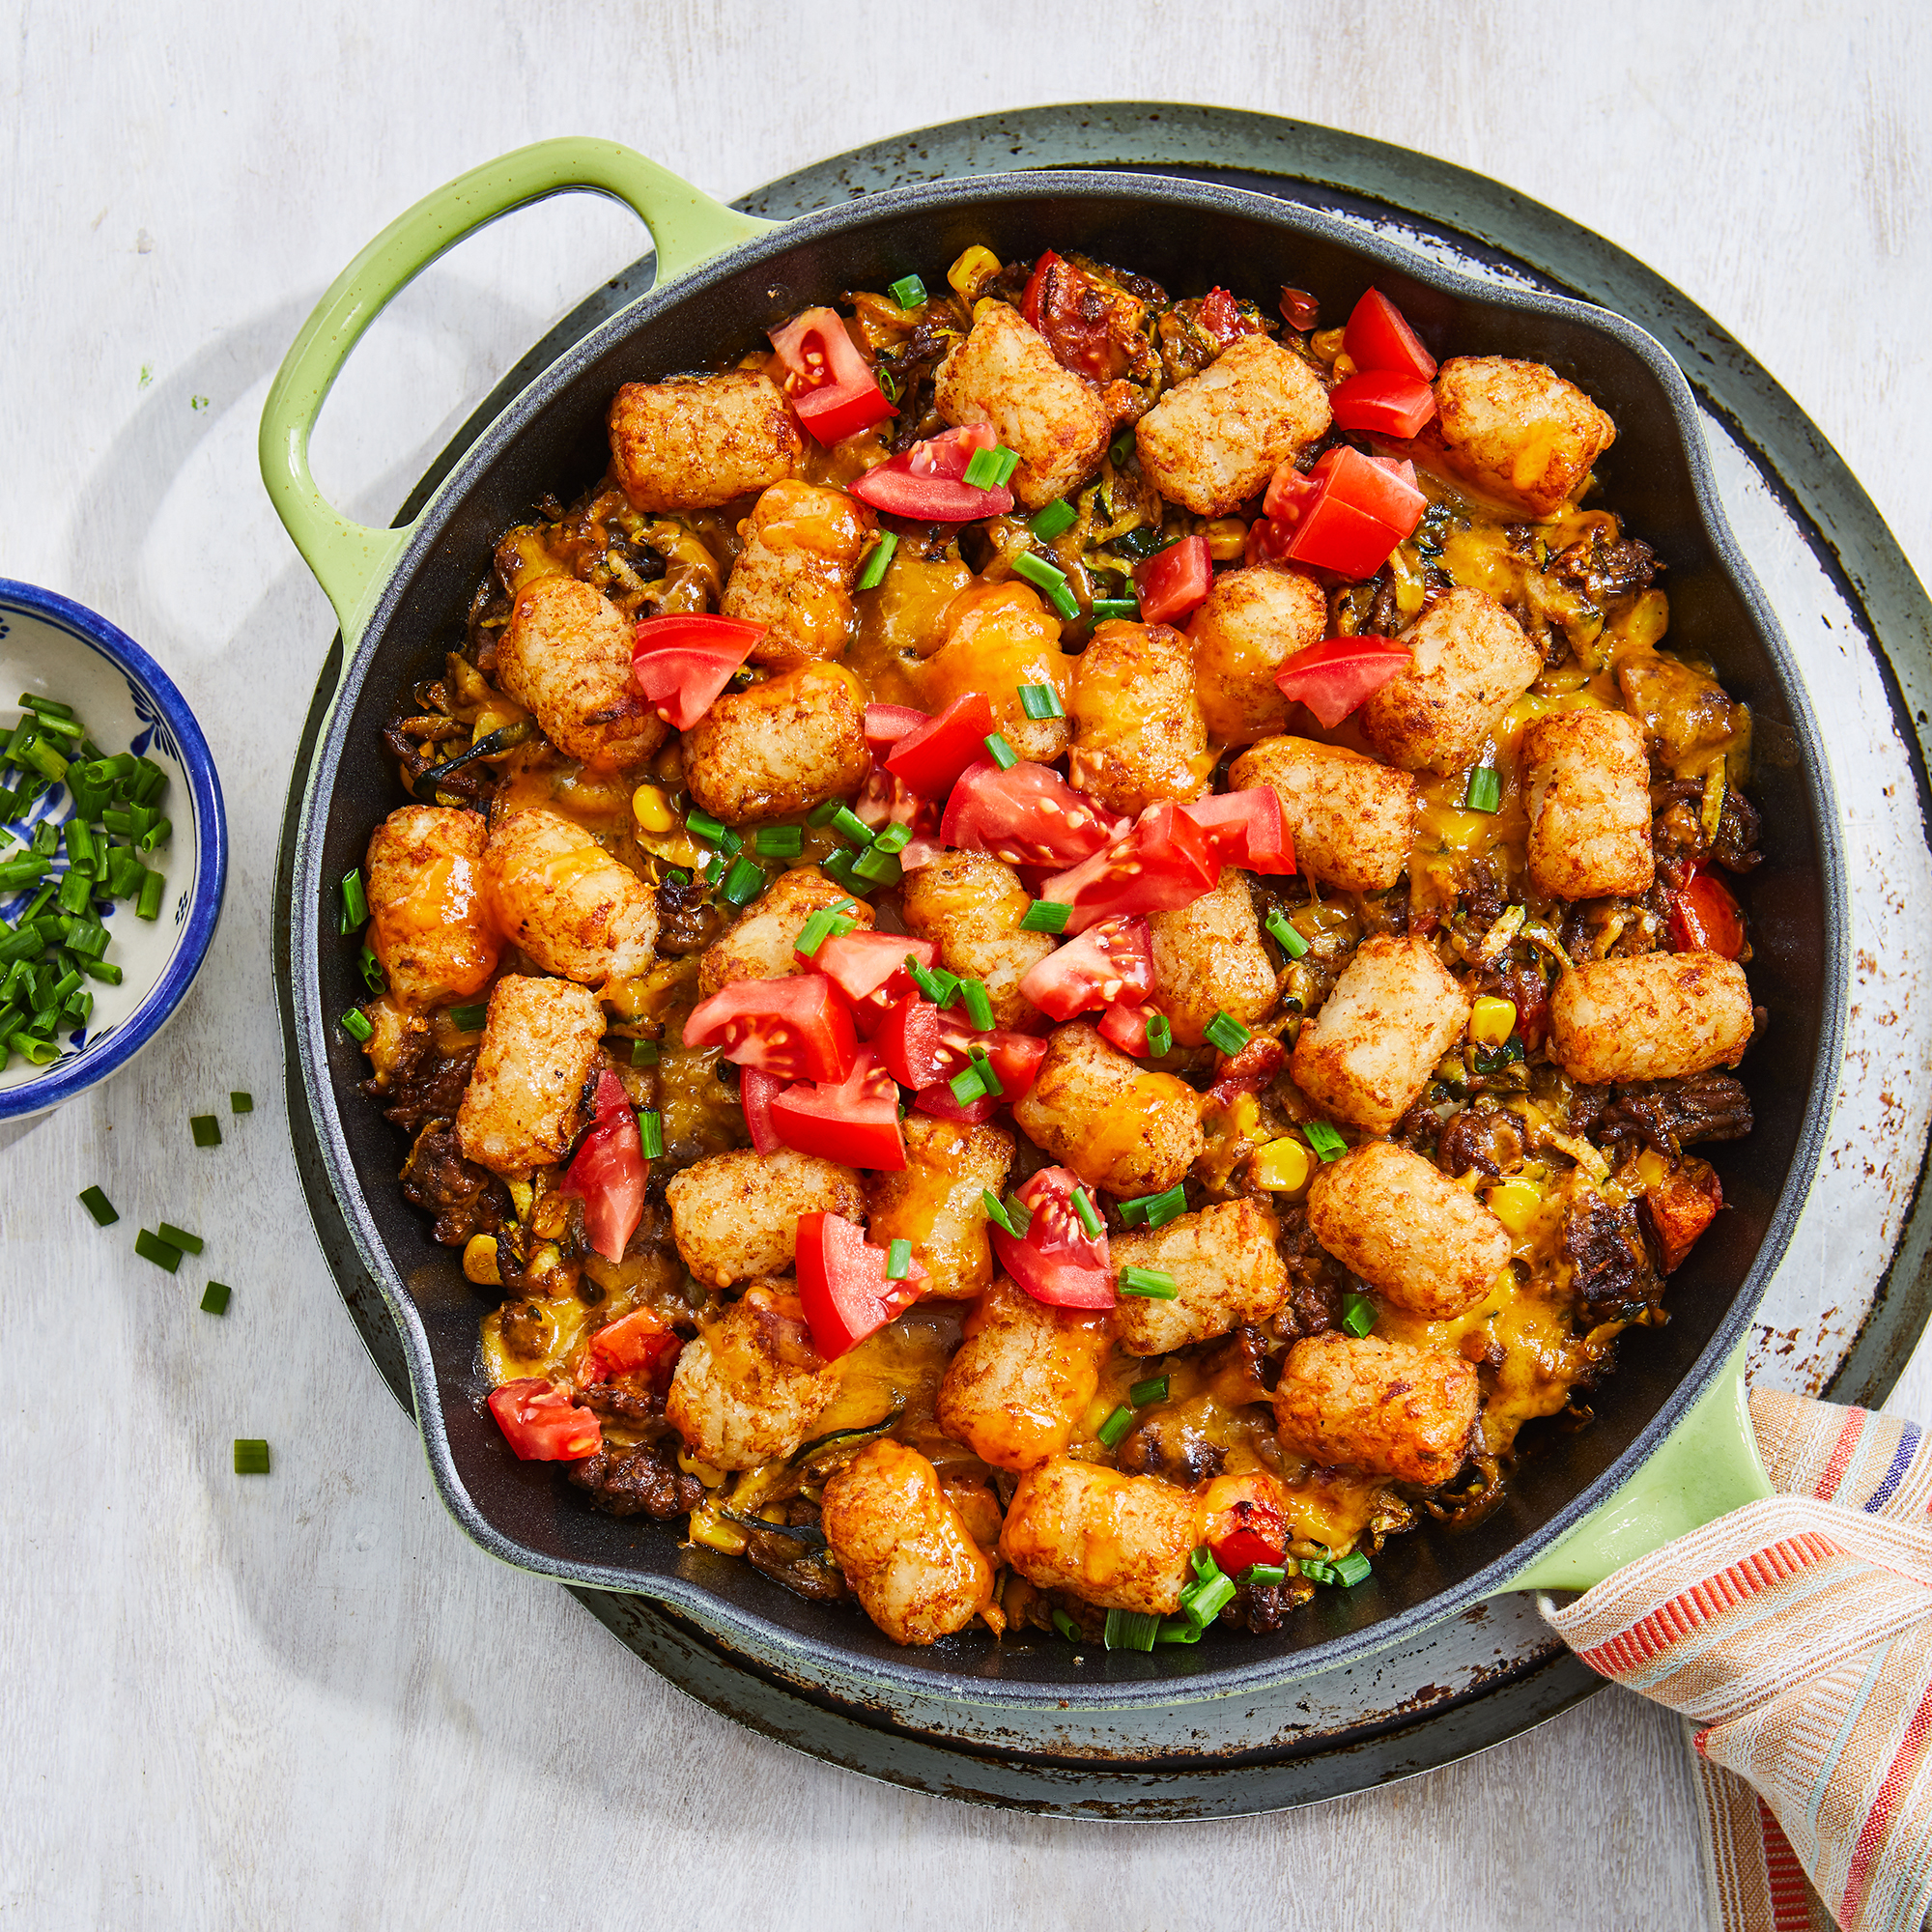 Tater Tot Casserole with Beef, Corn & Zucchini